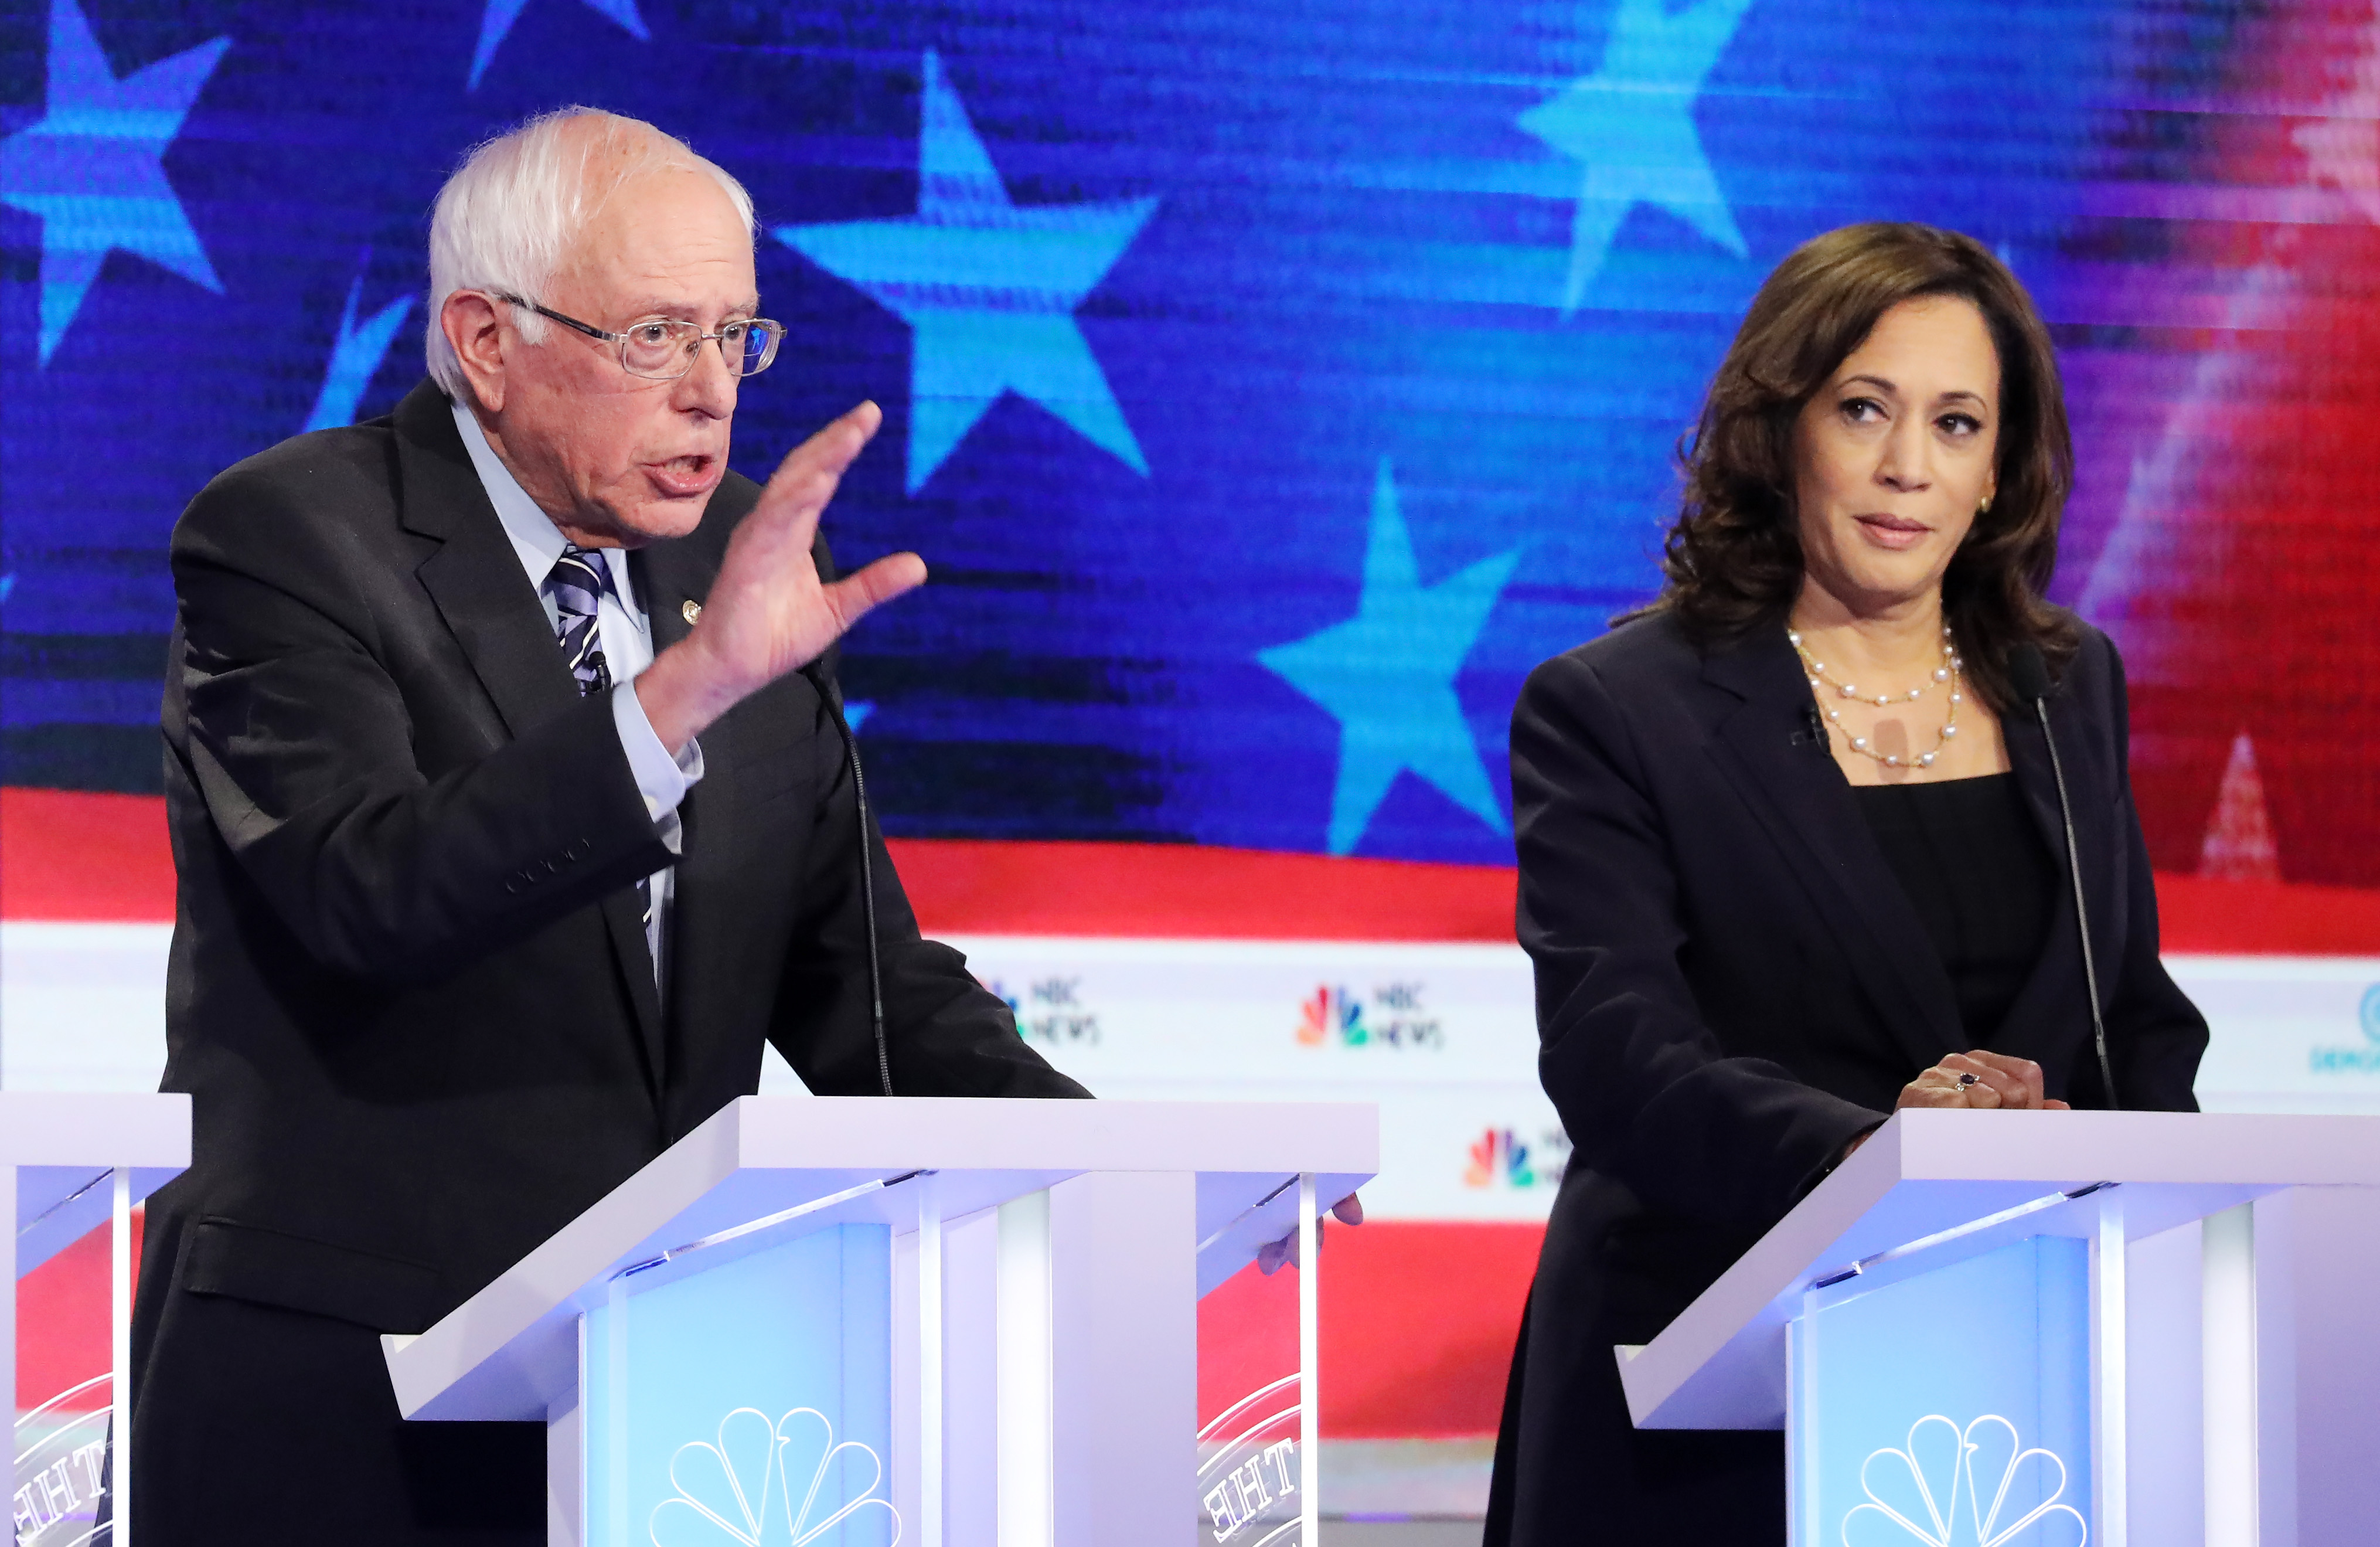 The DNC just announced the roster for the second Democratic debate